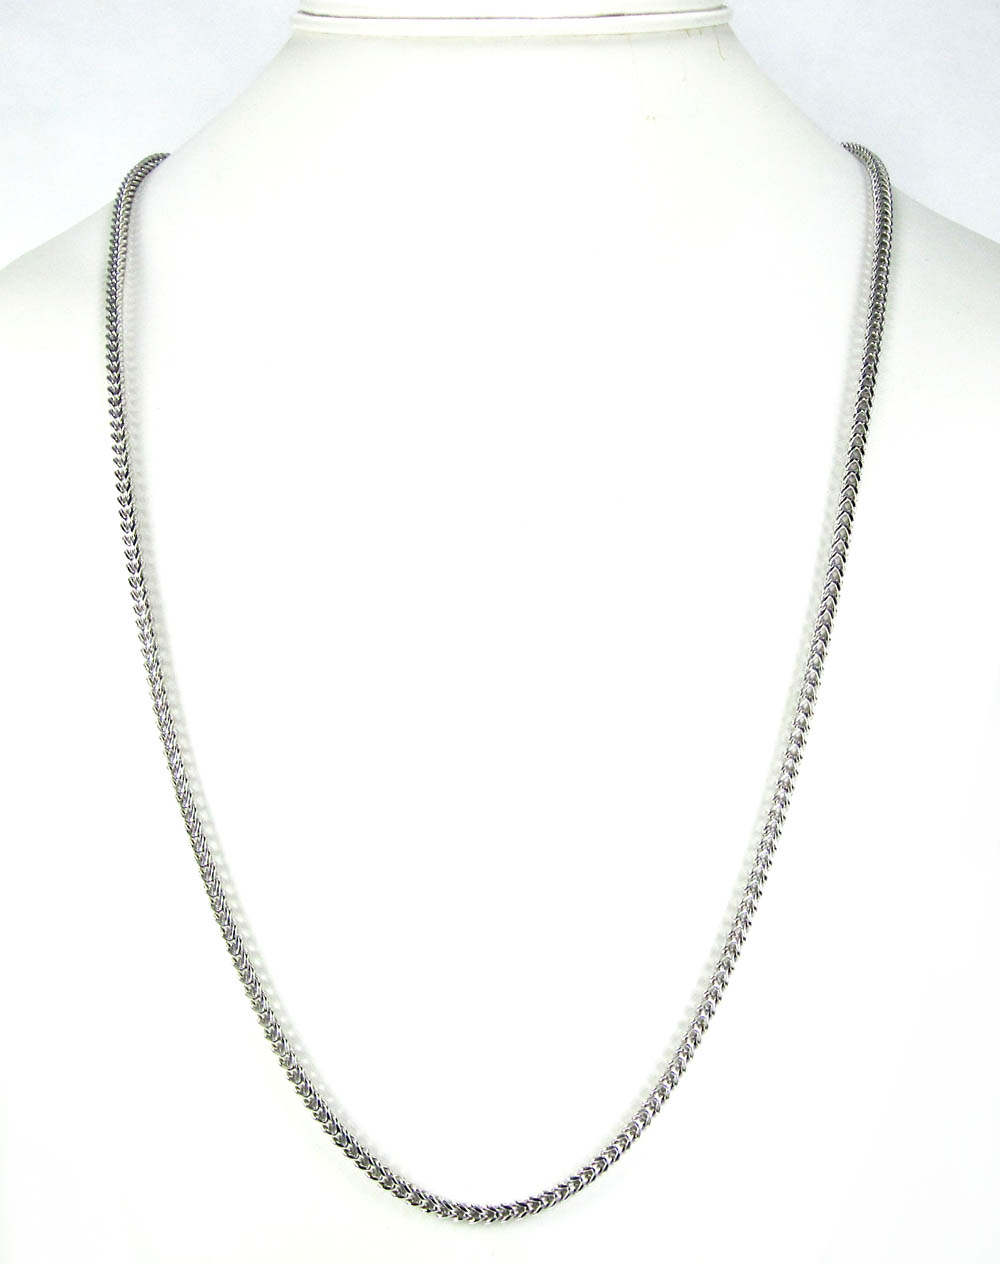 14k white gold smooth cut franco link chain 22-34 inch 3mm